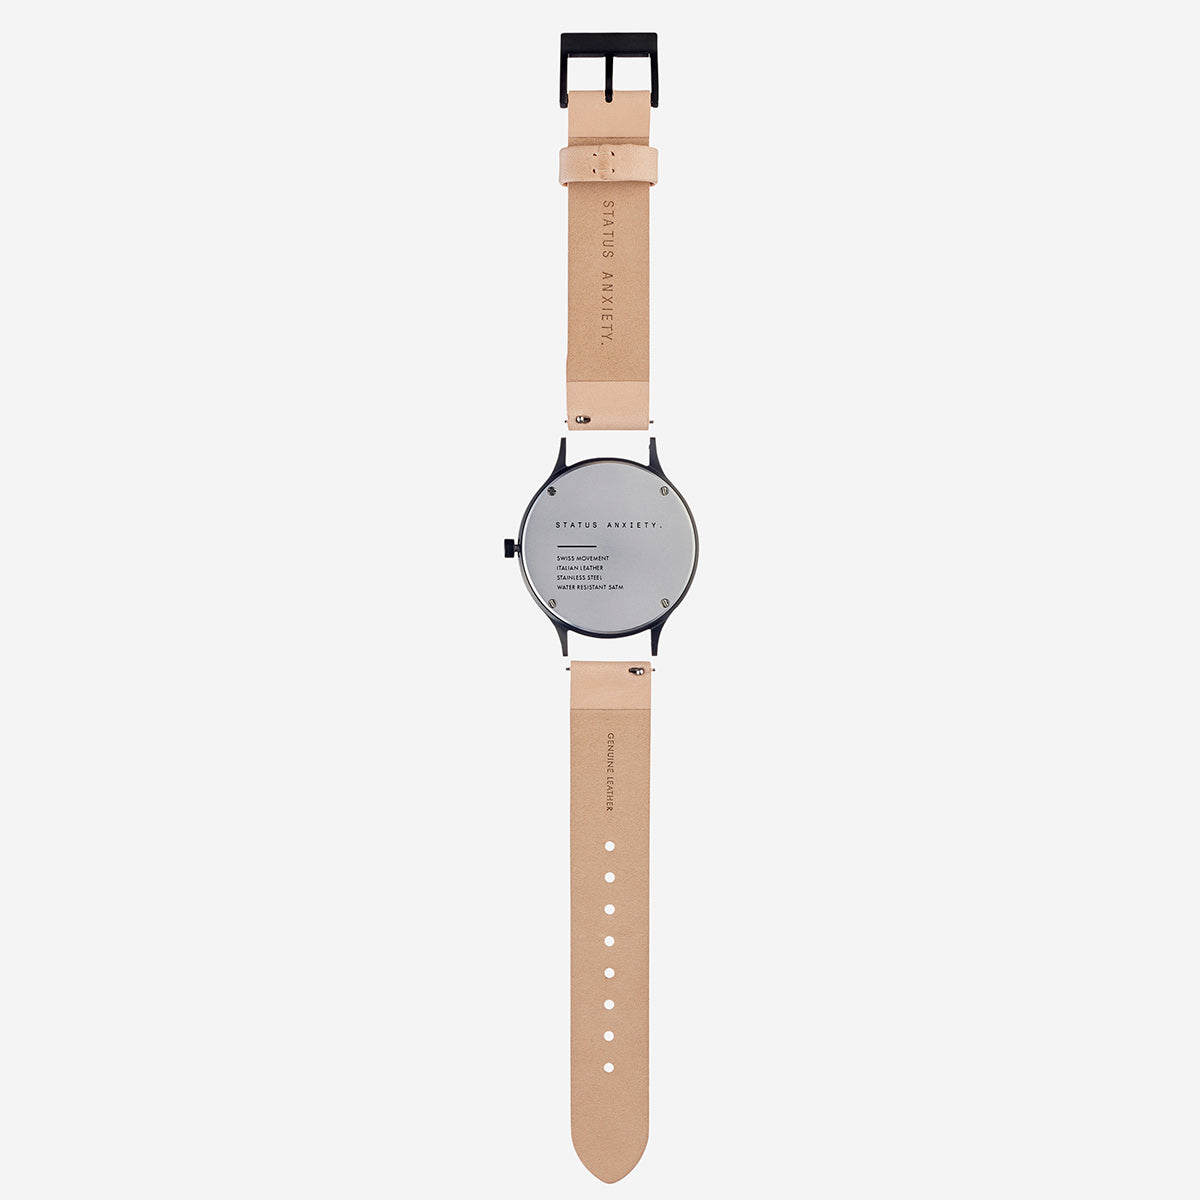 Status Anxiety Inertia Leather Unisex Watch Strap (Only)- Natural Strap/Matte Black Buckle